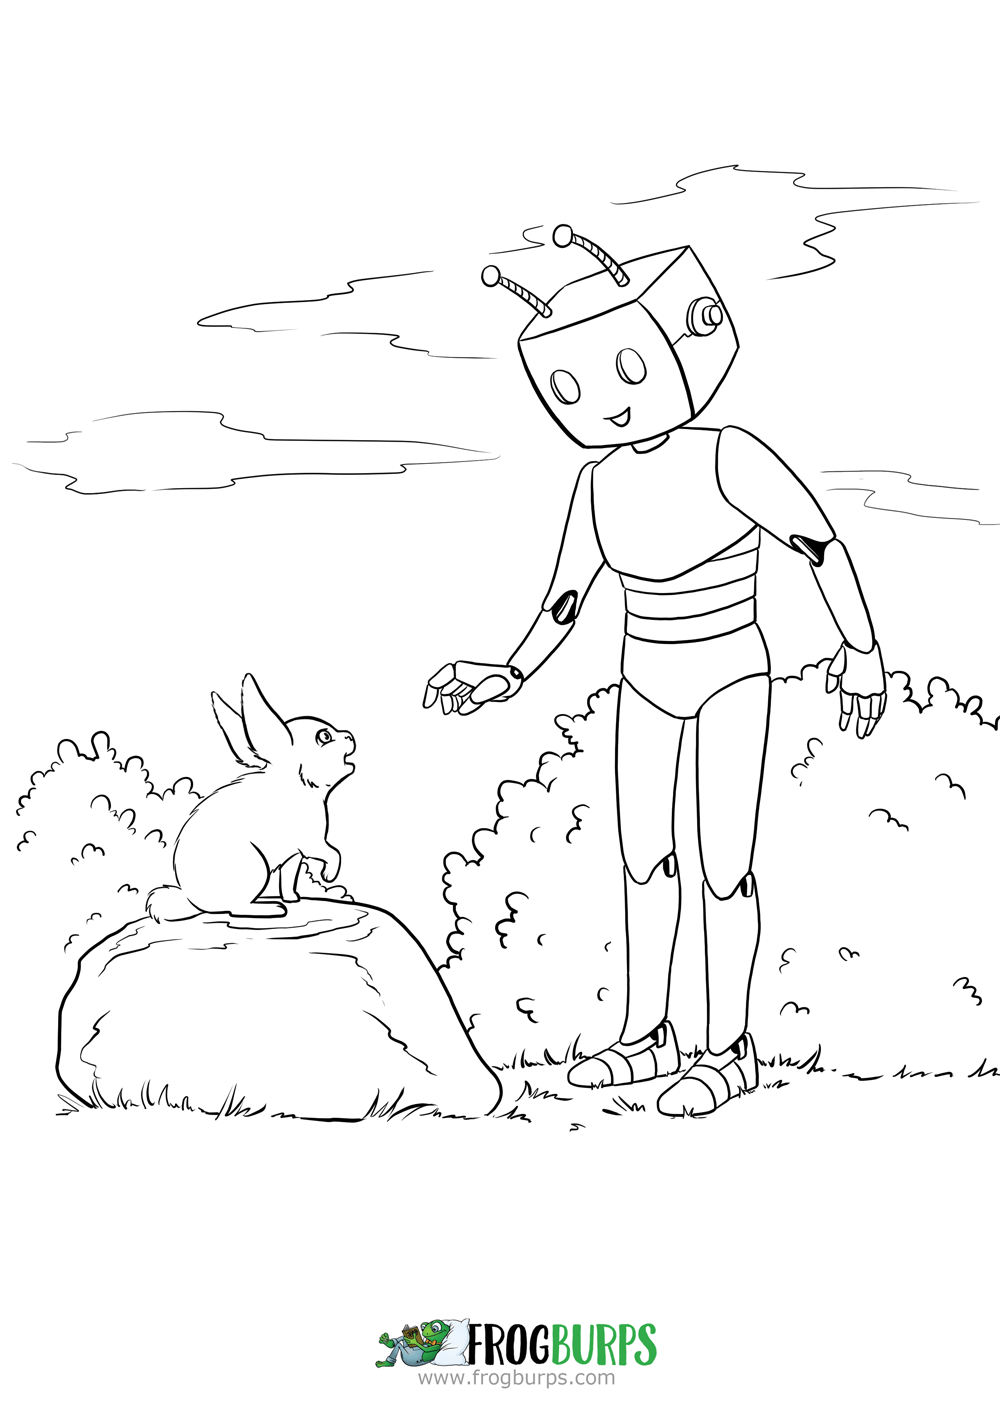 Robot & Rabbit coloring page